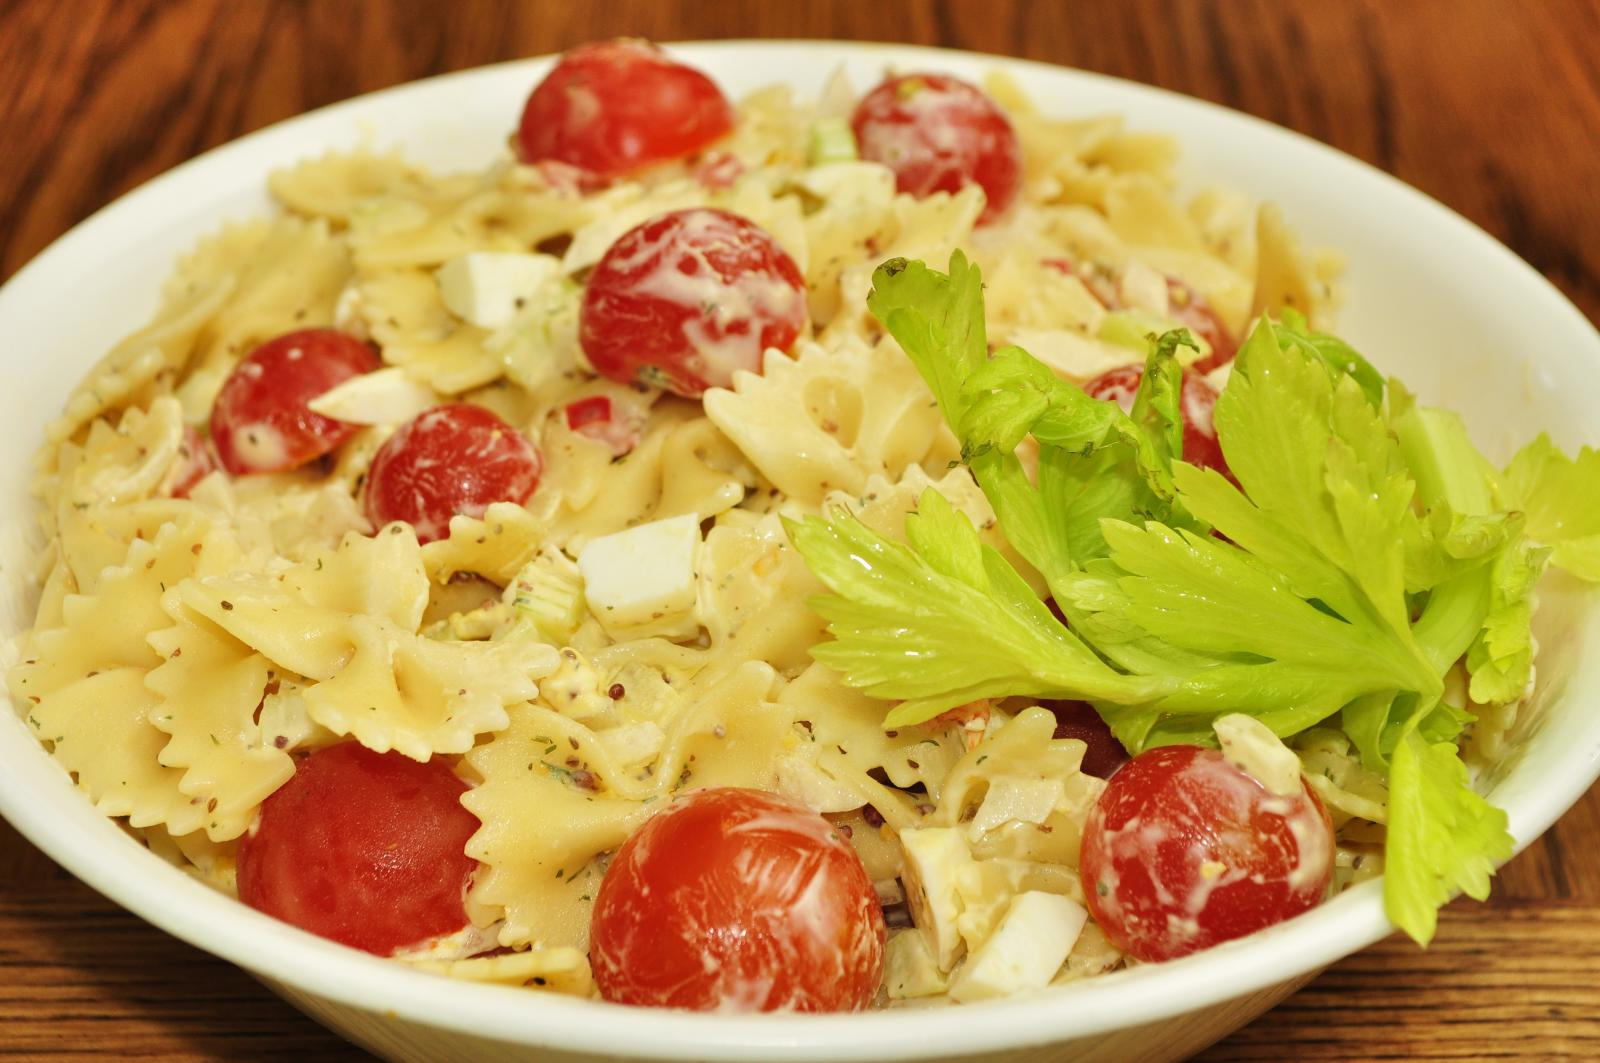 File:Pasta salad with cherry tomatoes.jpg - Wikimedia Commons